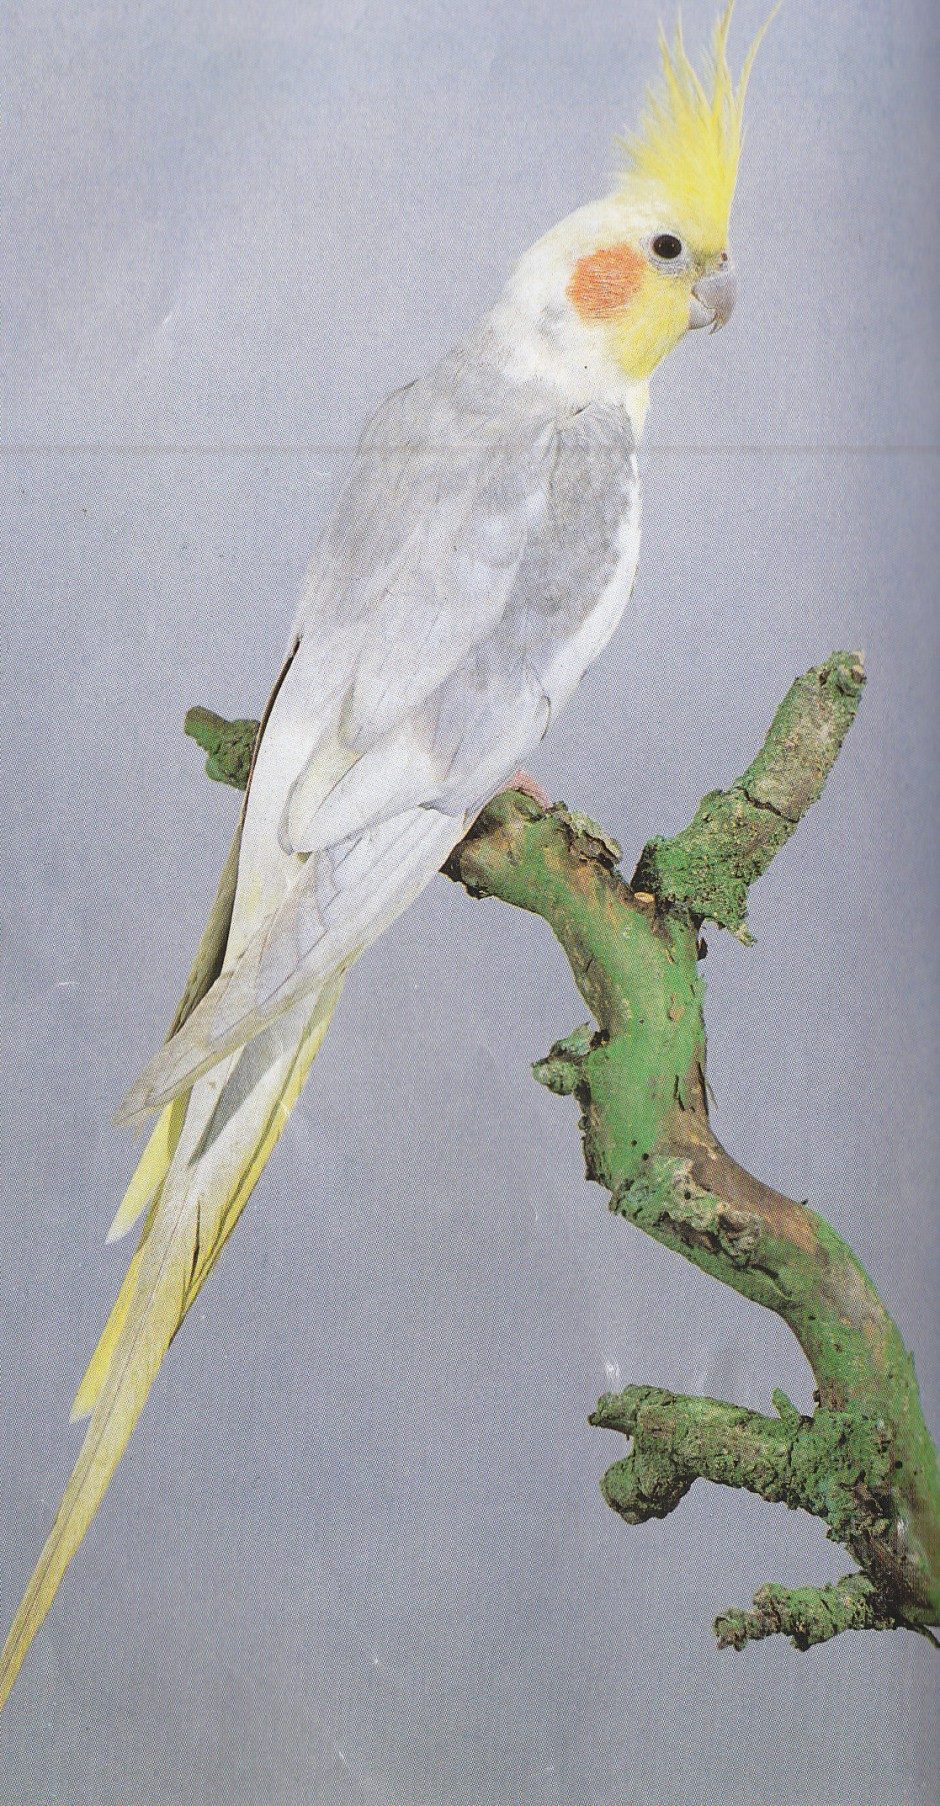 My Cockatiel Dying - How Will I Cope? - Cockatiels As Pets